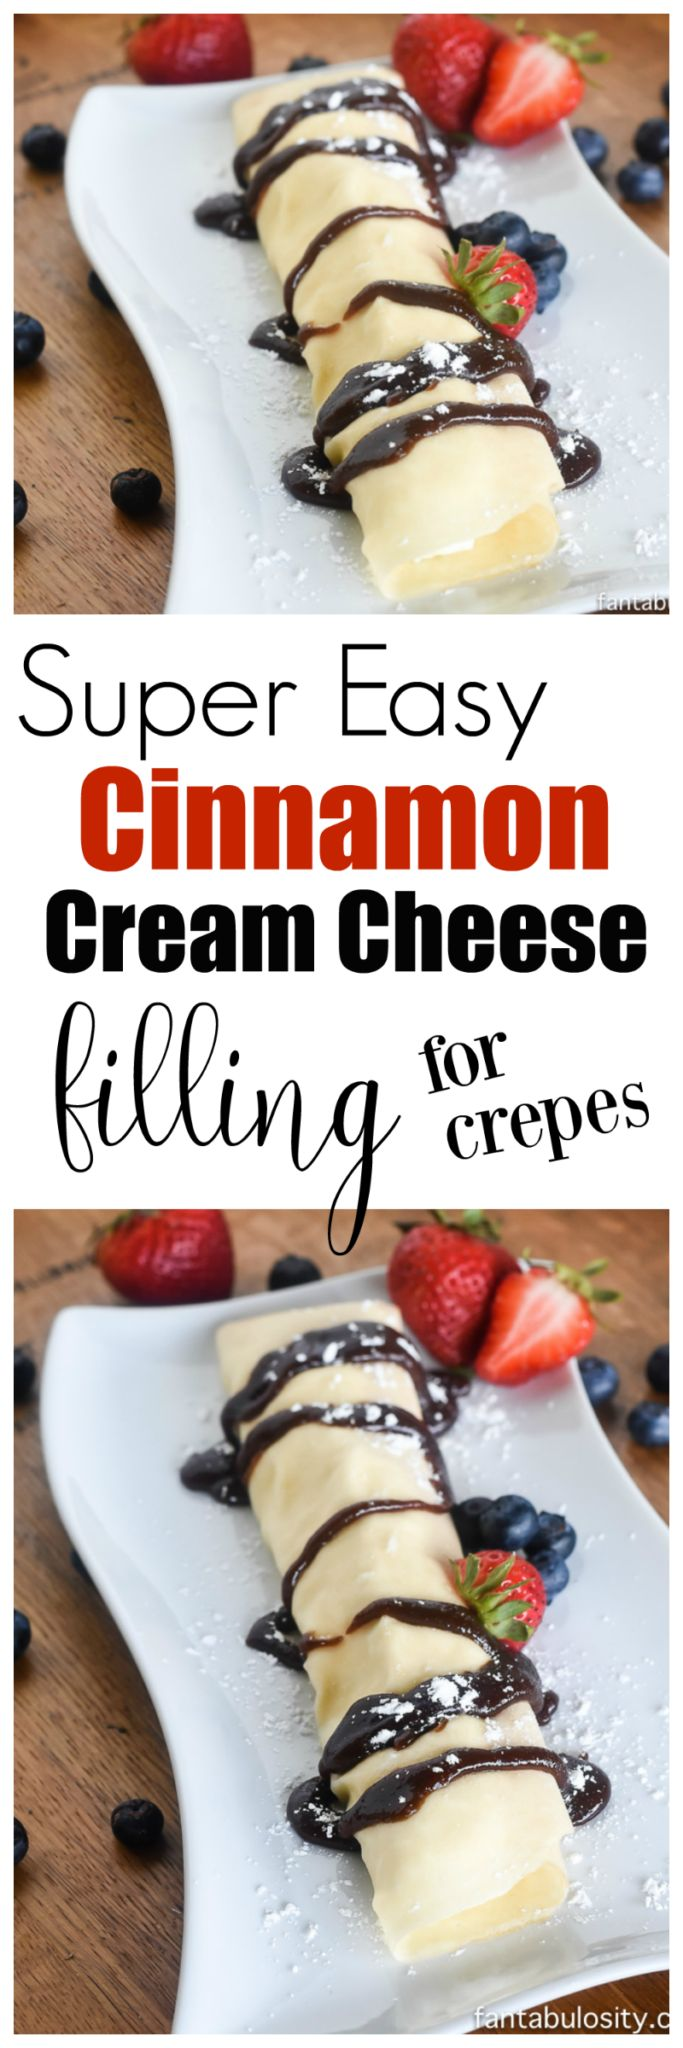 Easy Cinnamon Cream Cheese Filling Recipe: For Crepes This was SO easy and INCREDIBLE! My husband begged me to make them again